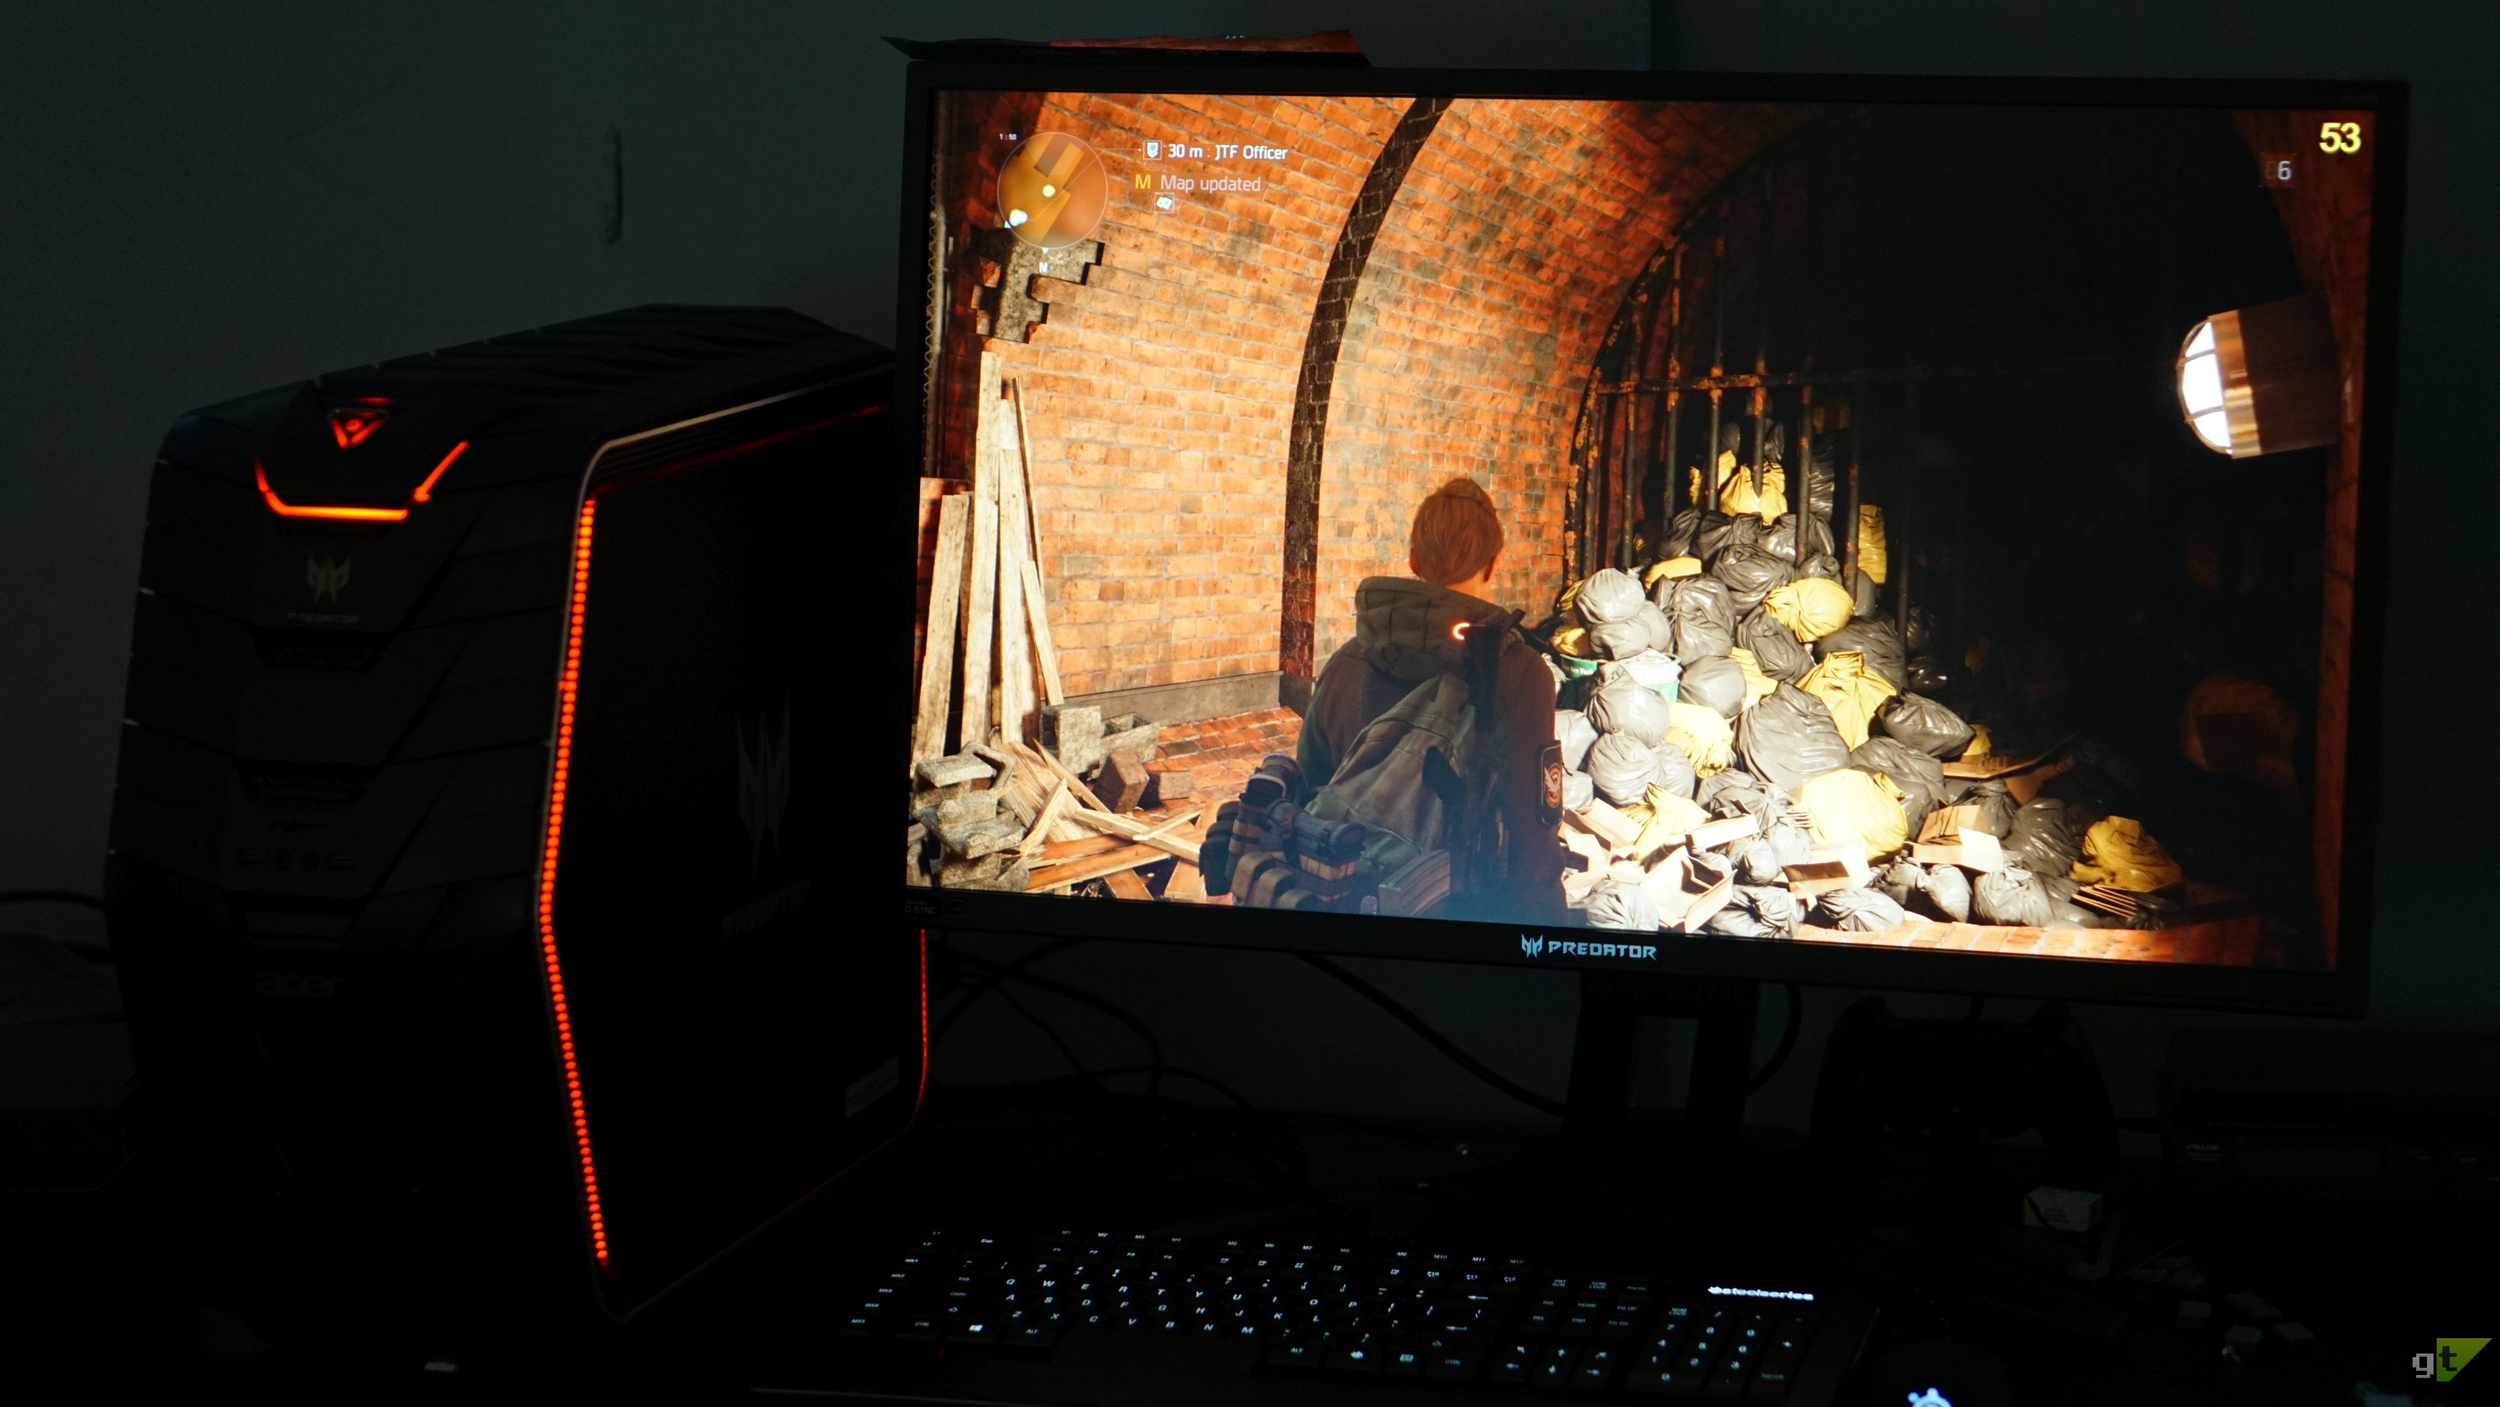 The Division was rocking on this build but struggling at 30 FPS in some areas at 4K..